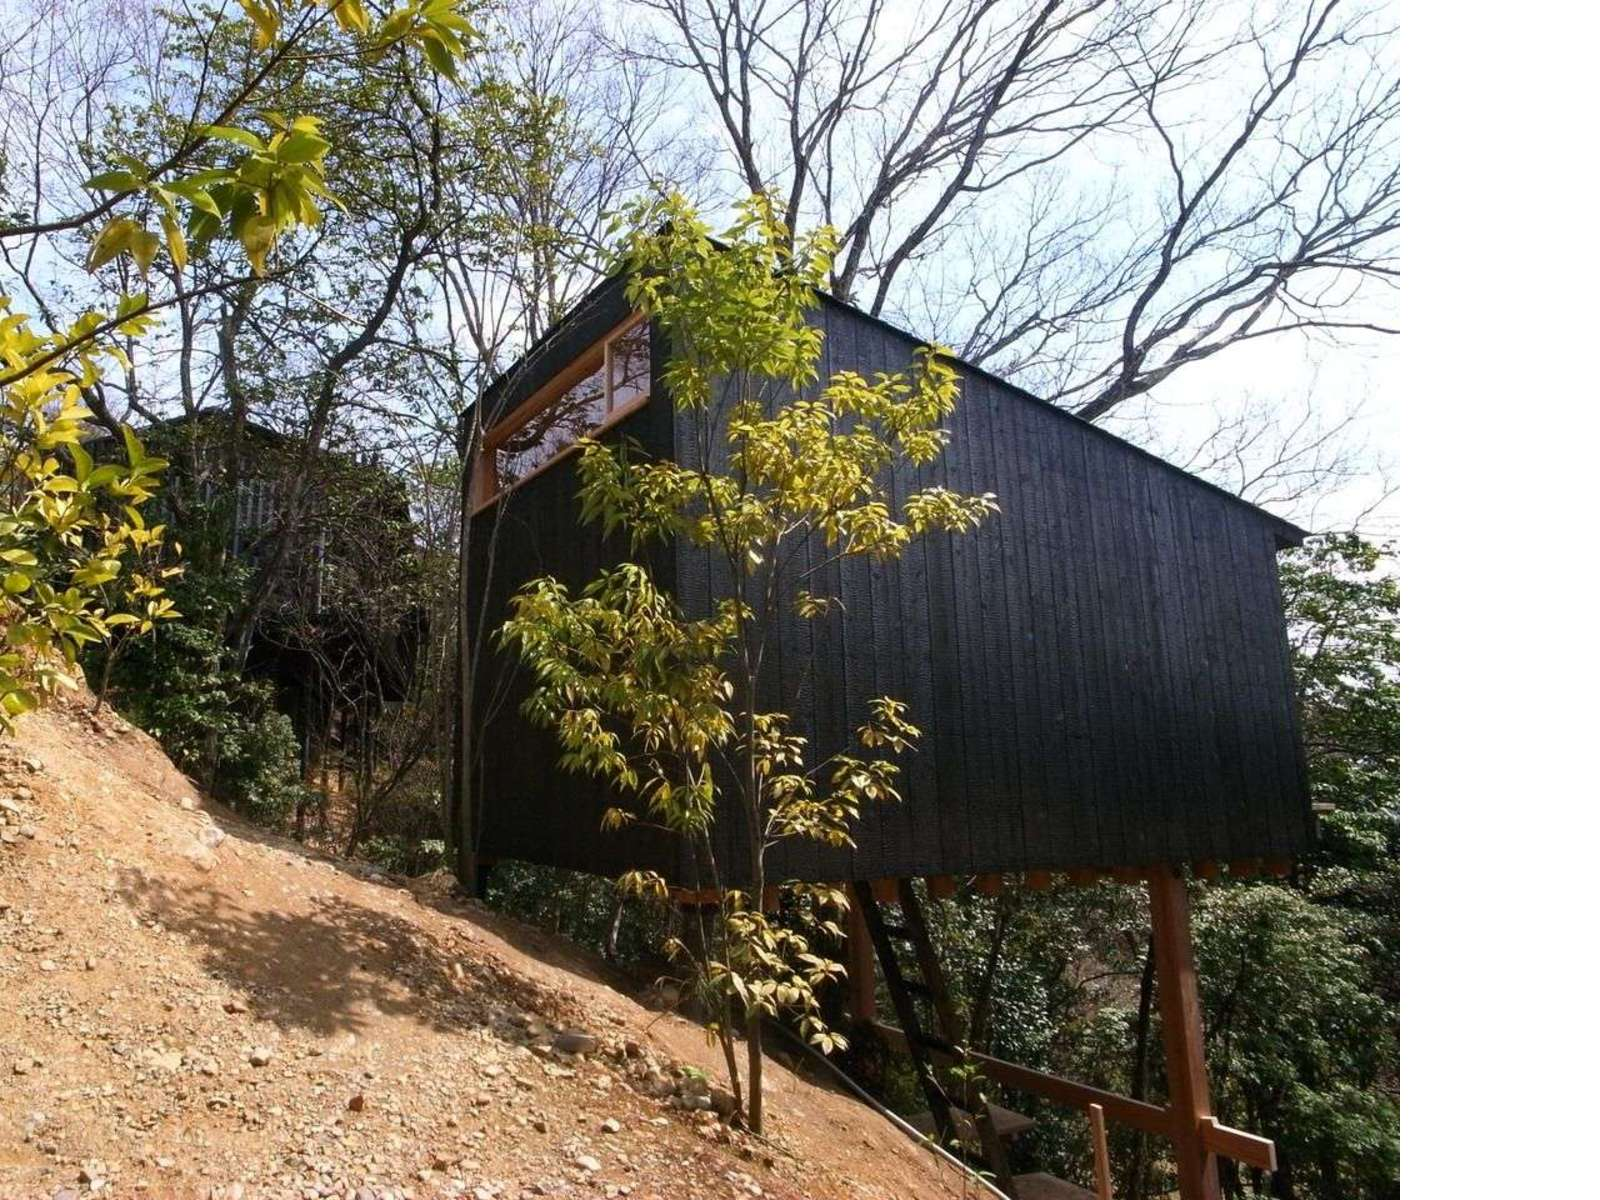 Koji Kakiuchi: A wooden shelter in Nara